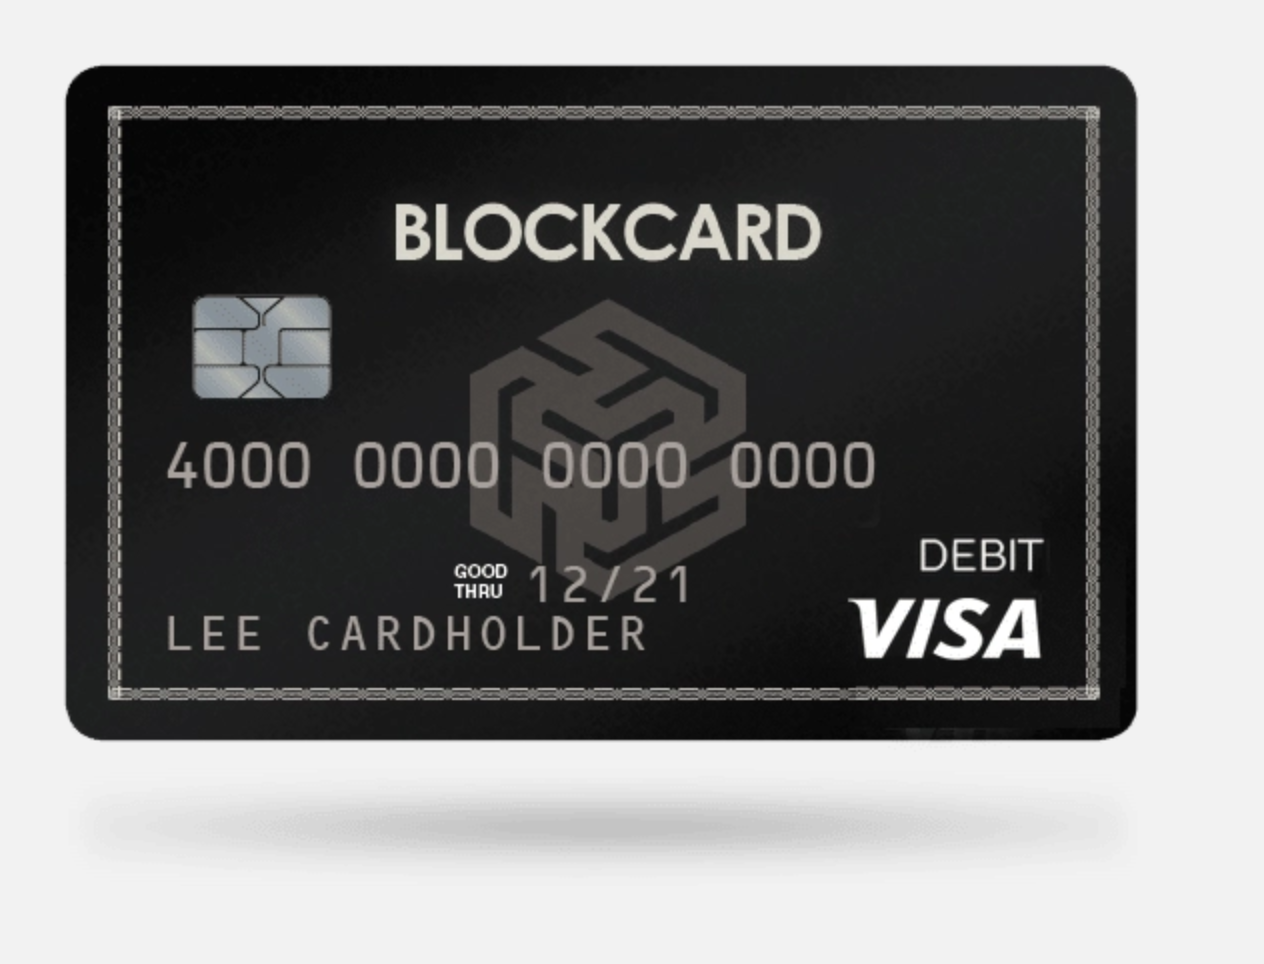 Blockcard Picture of Card